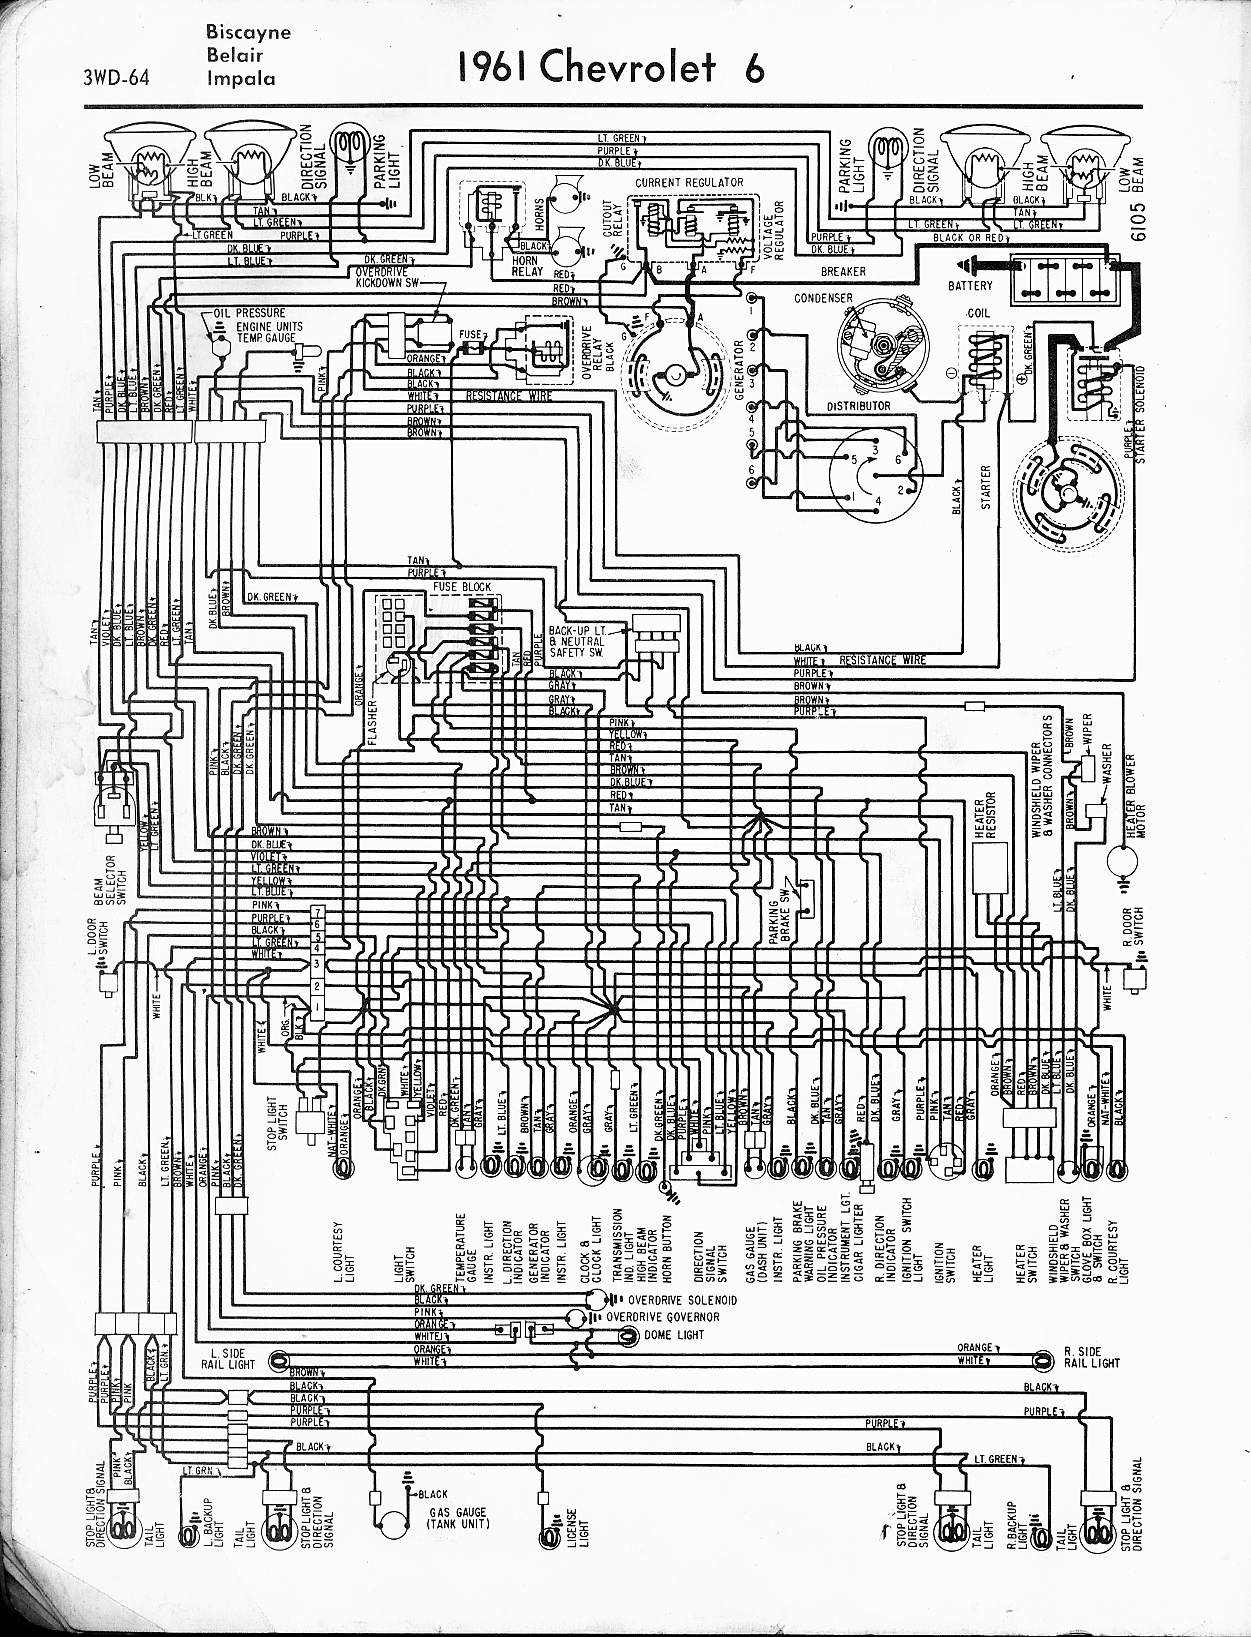 MWireChev61_3WD 064 57 65 chevy wiring diagrams 2001 corvette wiring diagram at crackthecode.co